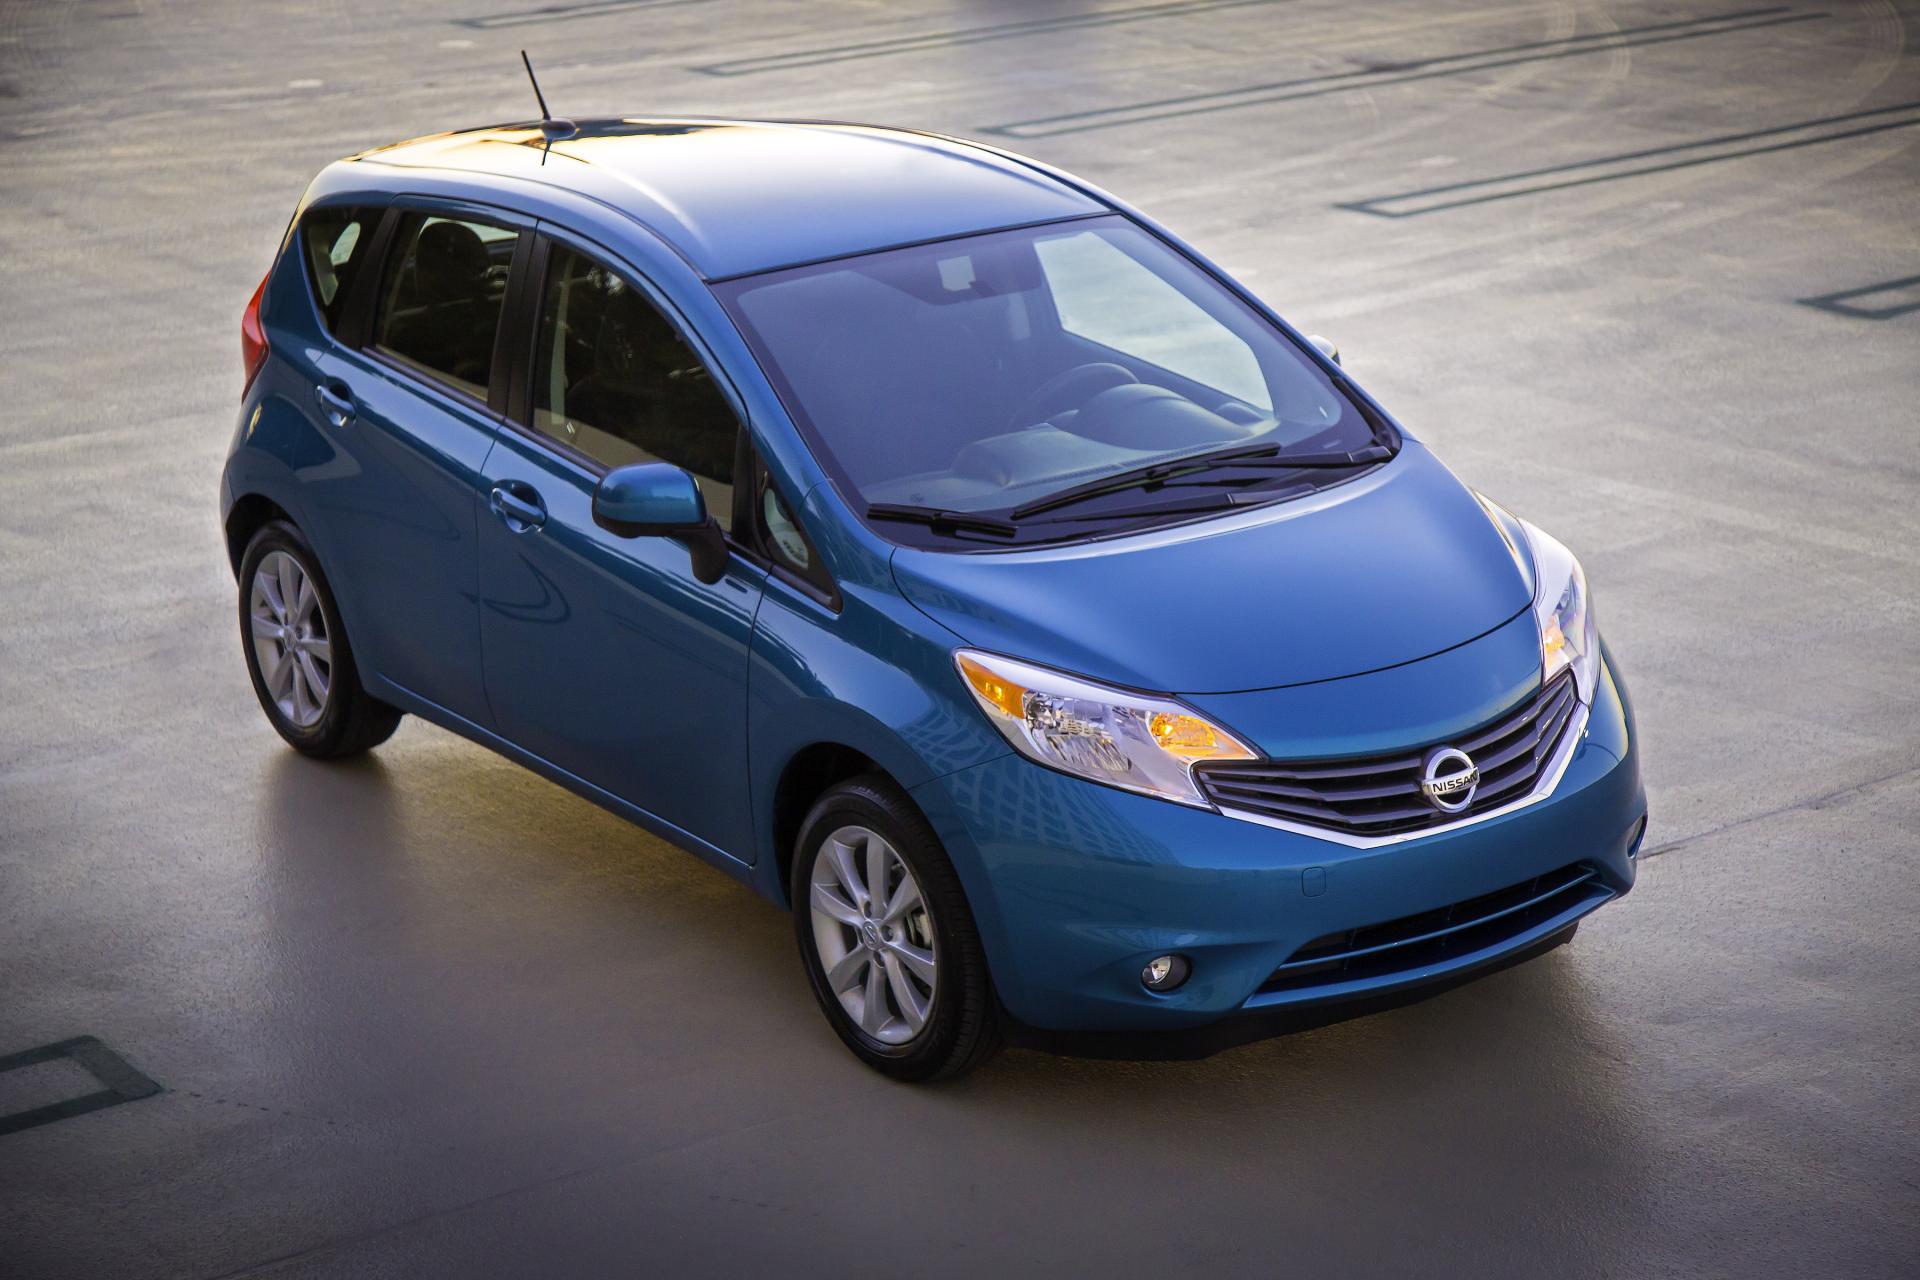 2014 nissan versa note technical specifications and data engine dimensions and mechanical. Black Bedroom Furniture Sets. Home Design Ideas